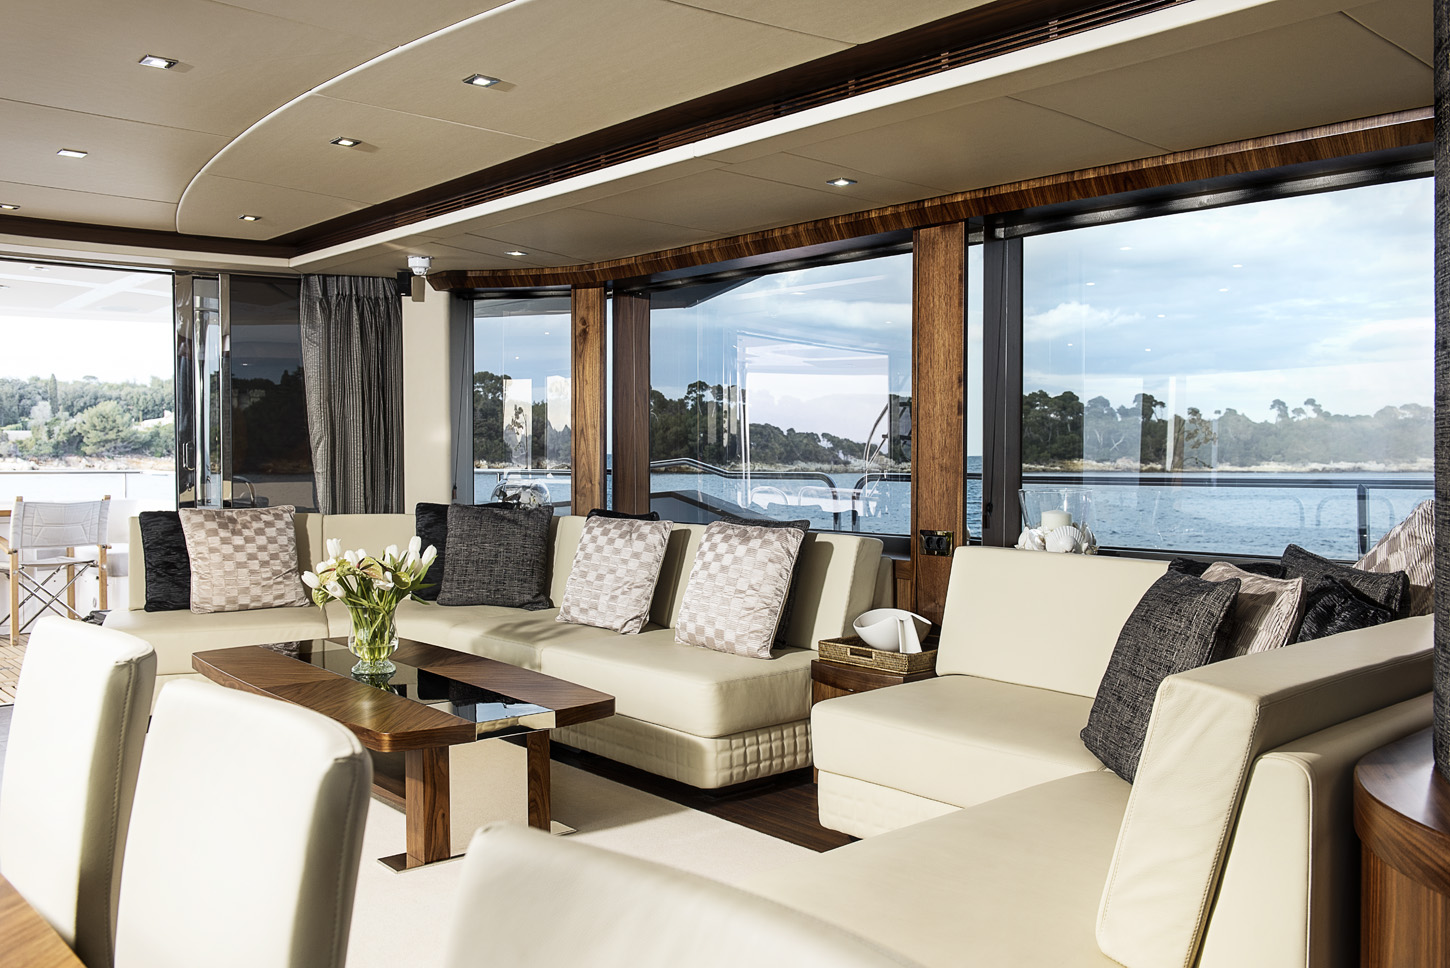 Motor yacht twenty eight salon and formal dining area for Formal dining area